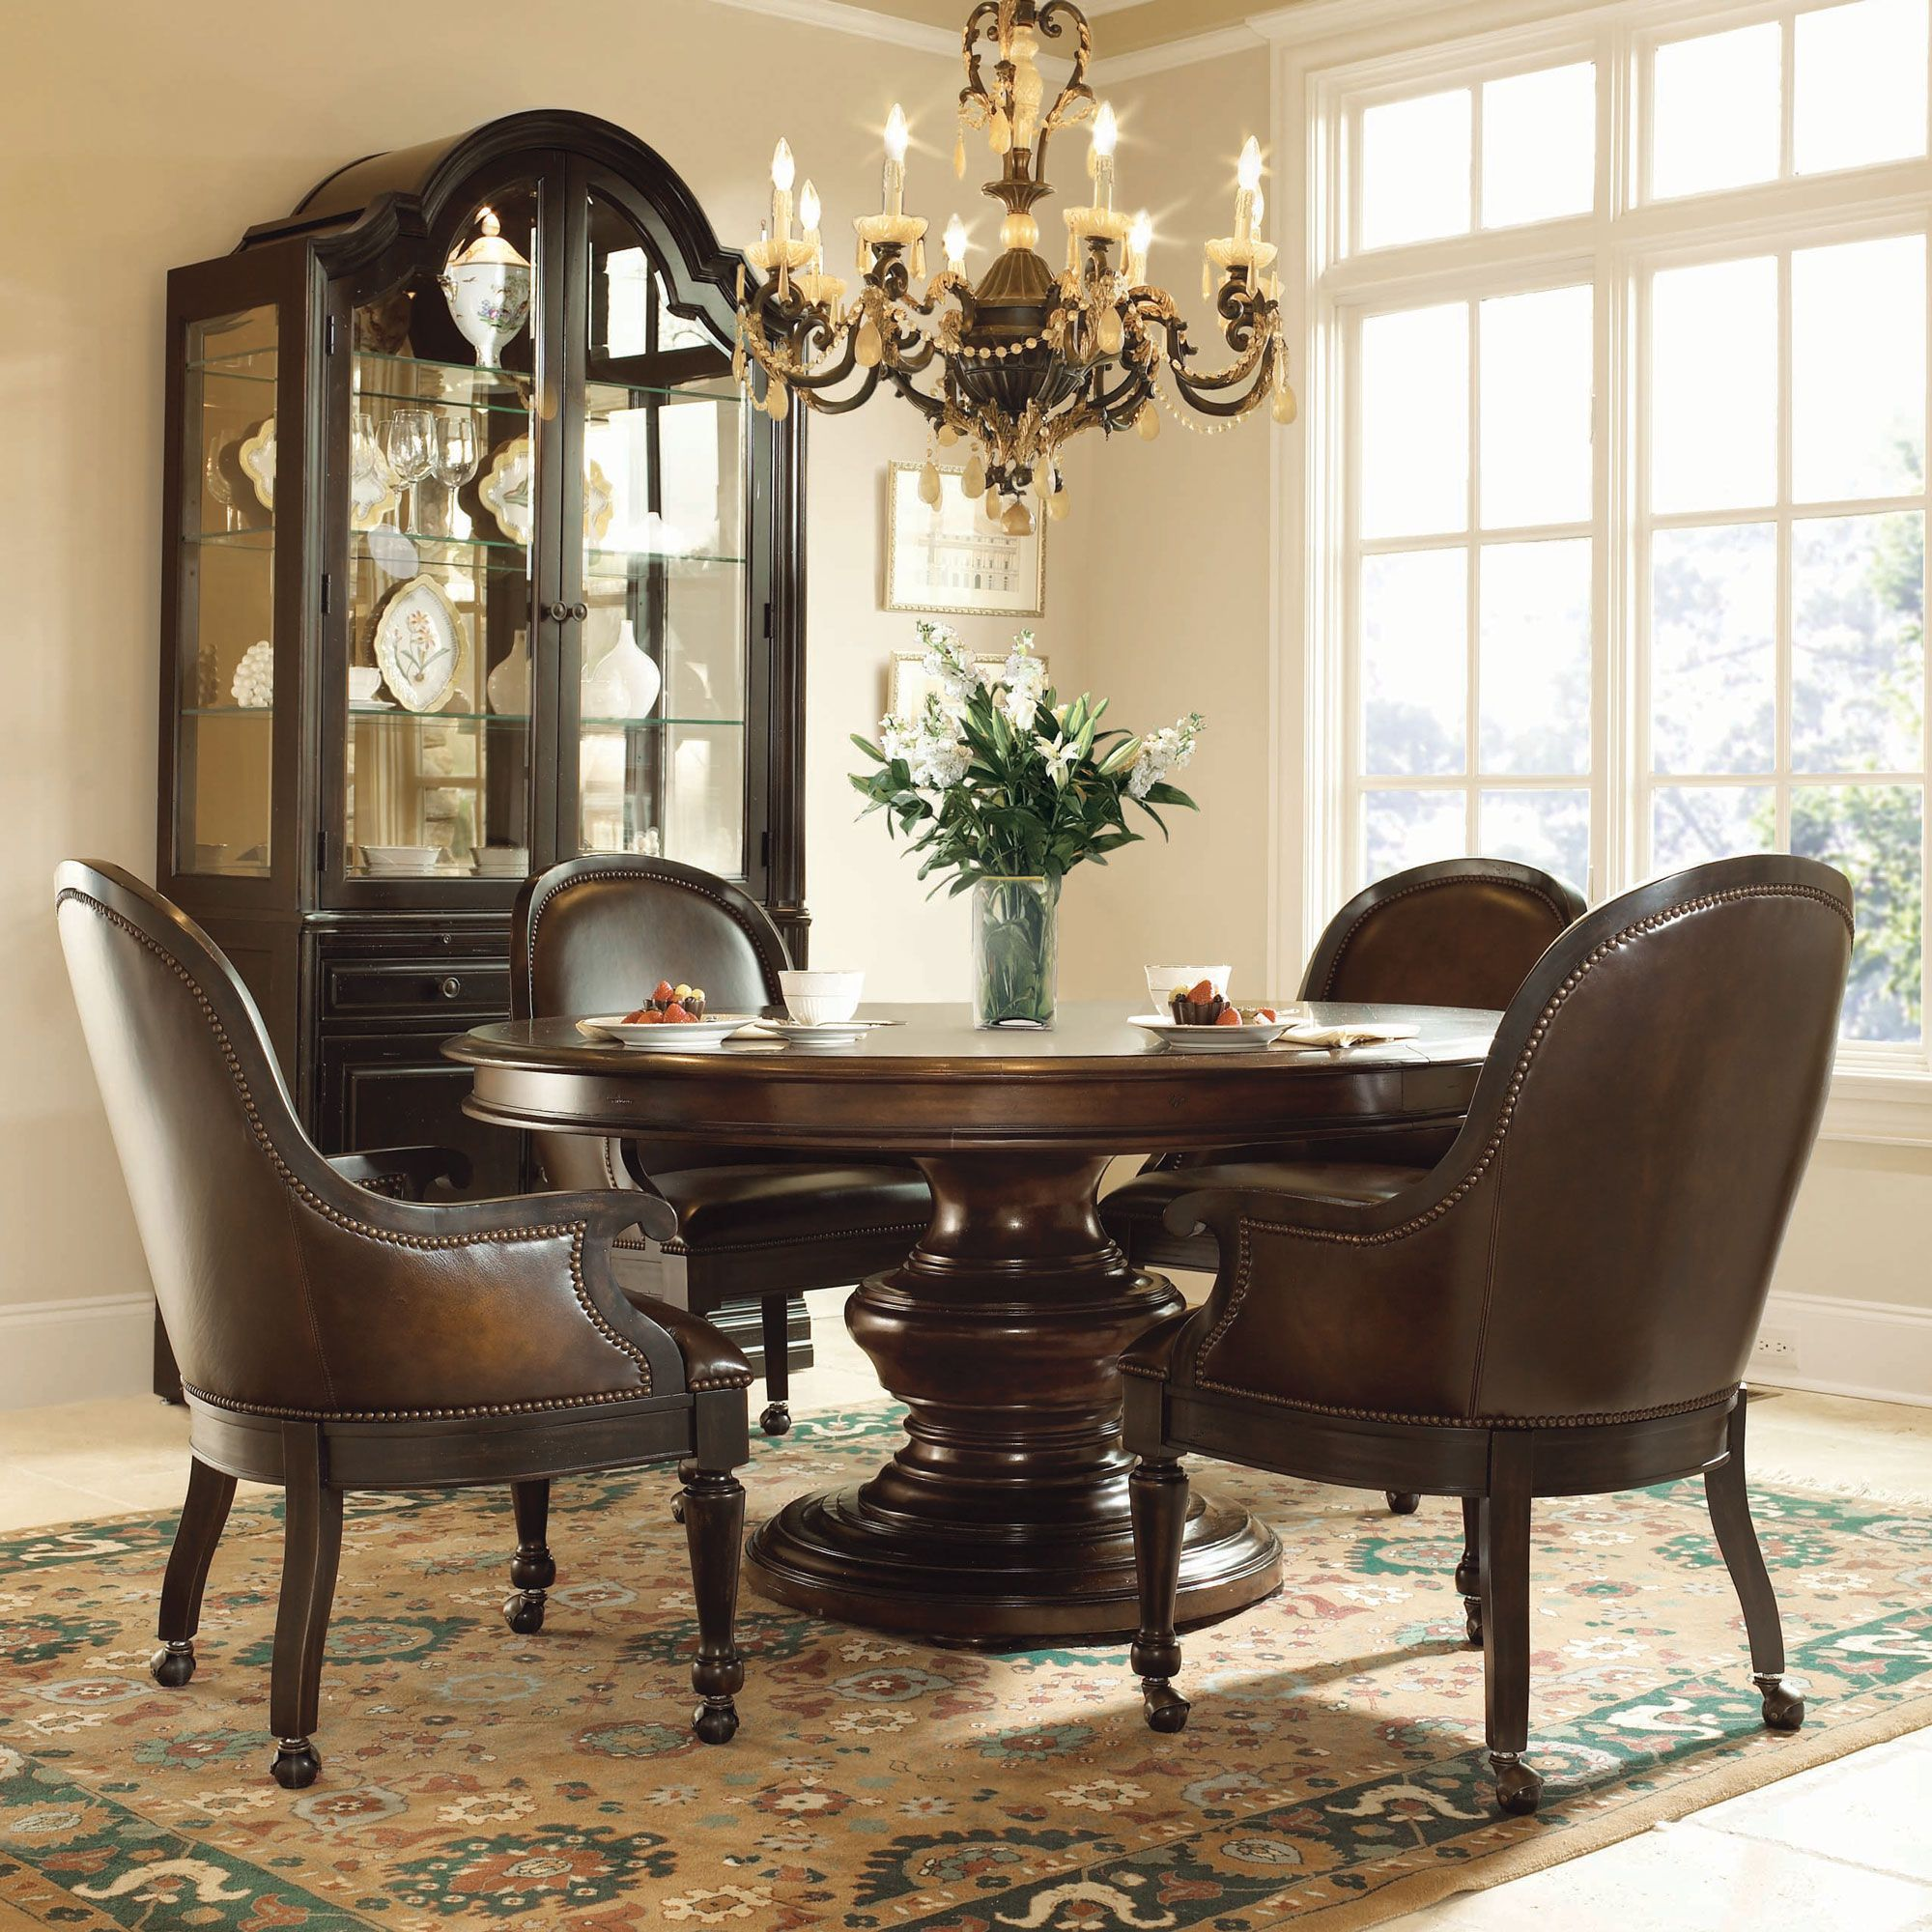 Room And Board Dining Chairs: Bernhardt Normandie Manor 5pc Round Dining Room Set With